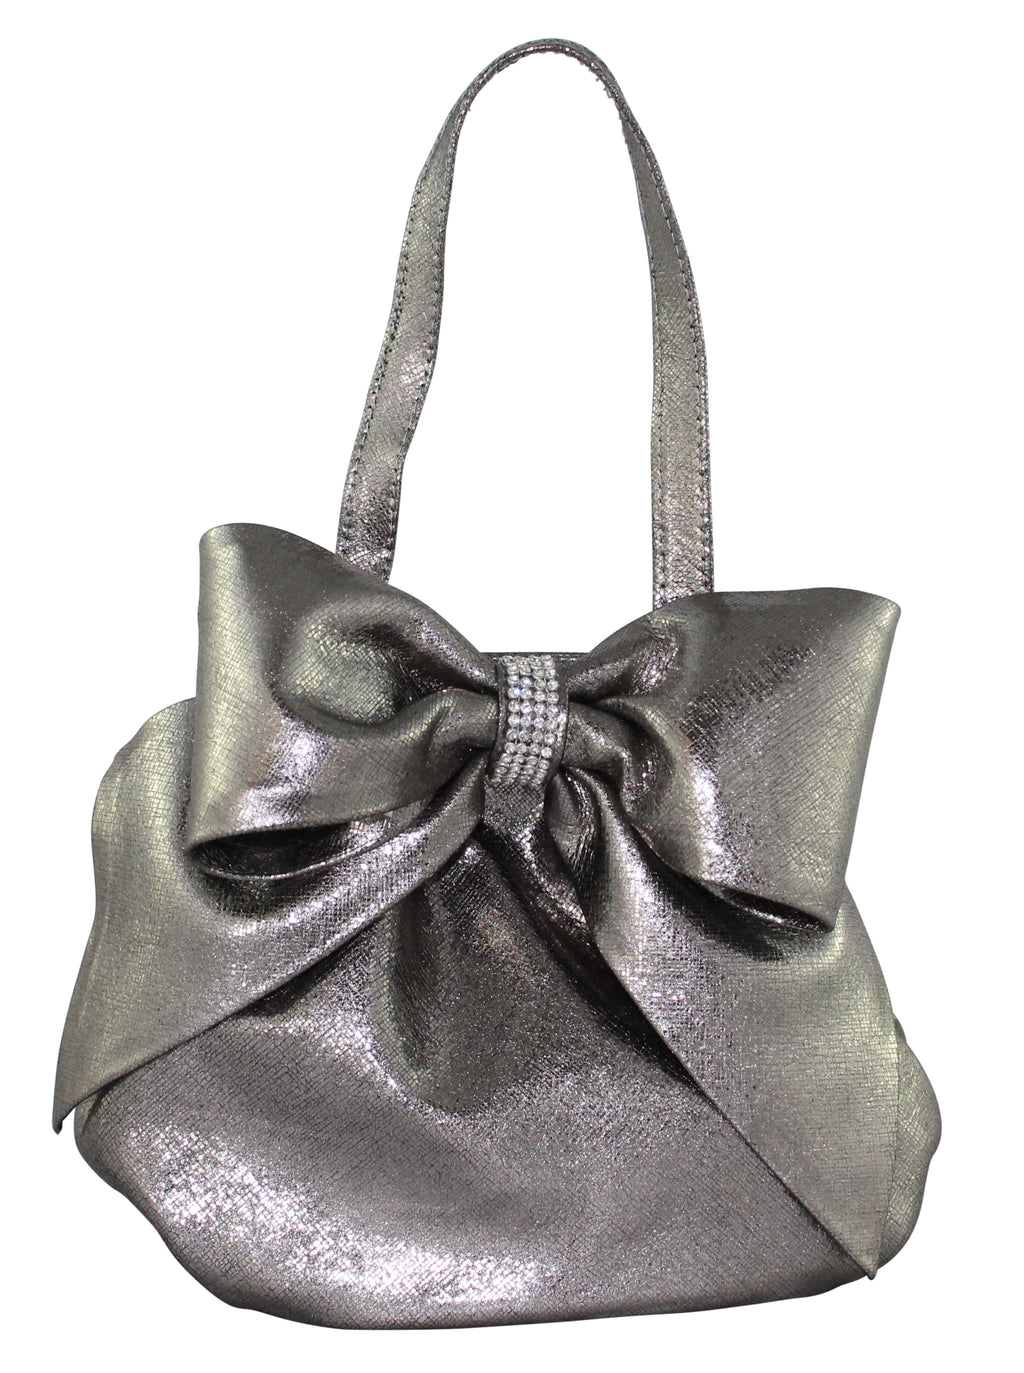 BA-016-150C TUL GIZA Gunmetal evening handbag bag purse, Bridal handbag collection,